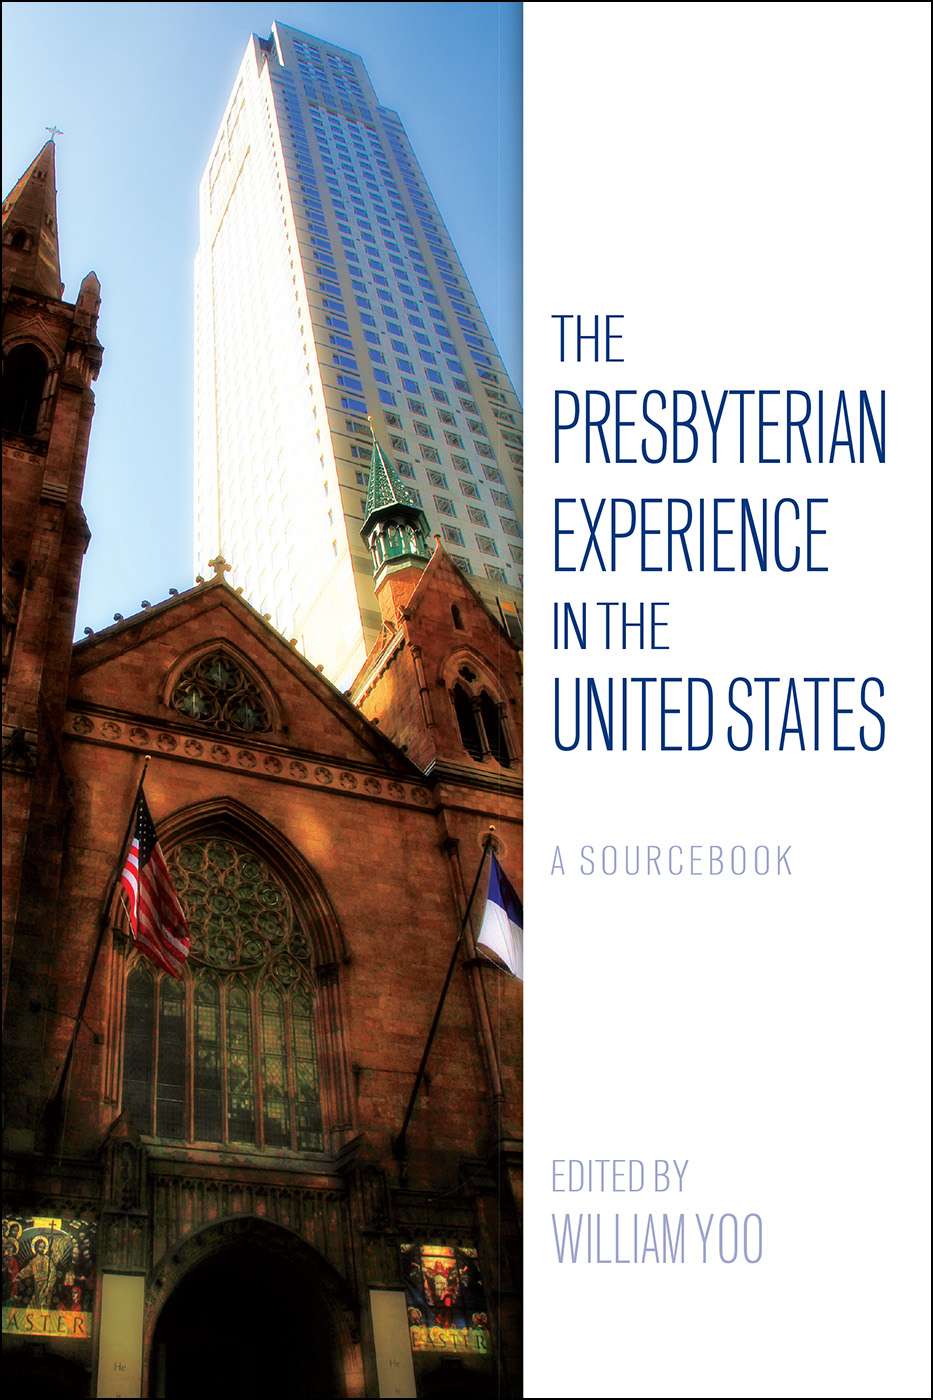 The Presbyterian Experience in the United States cover image